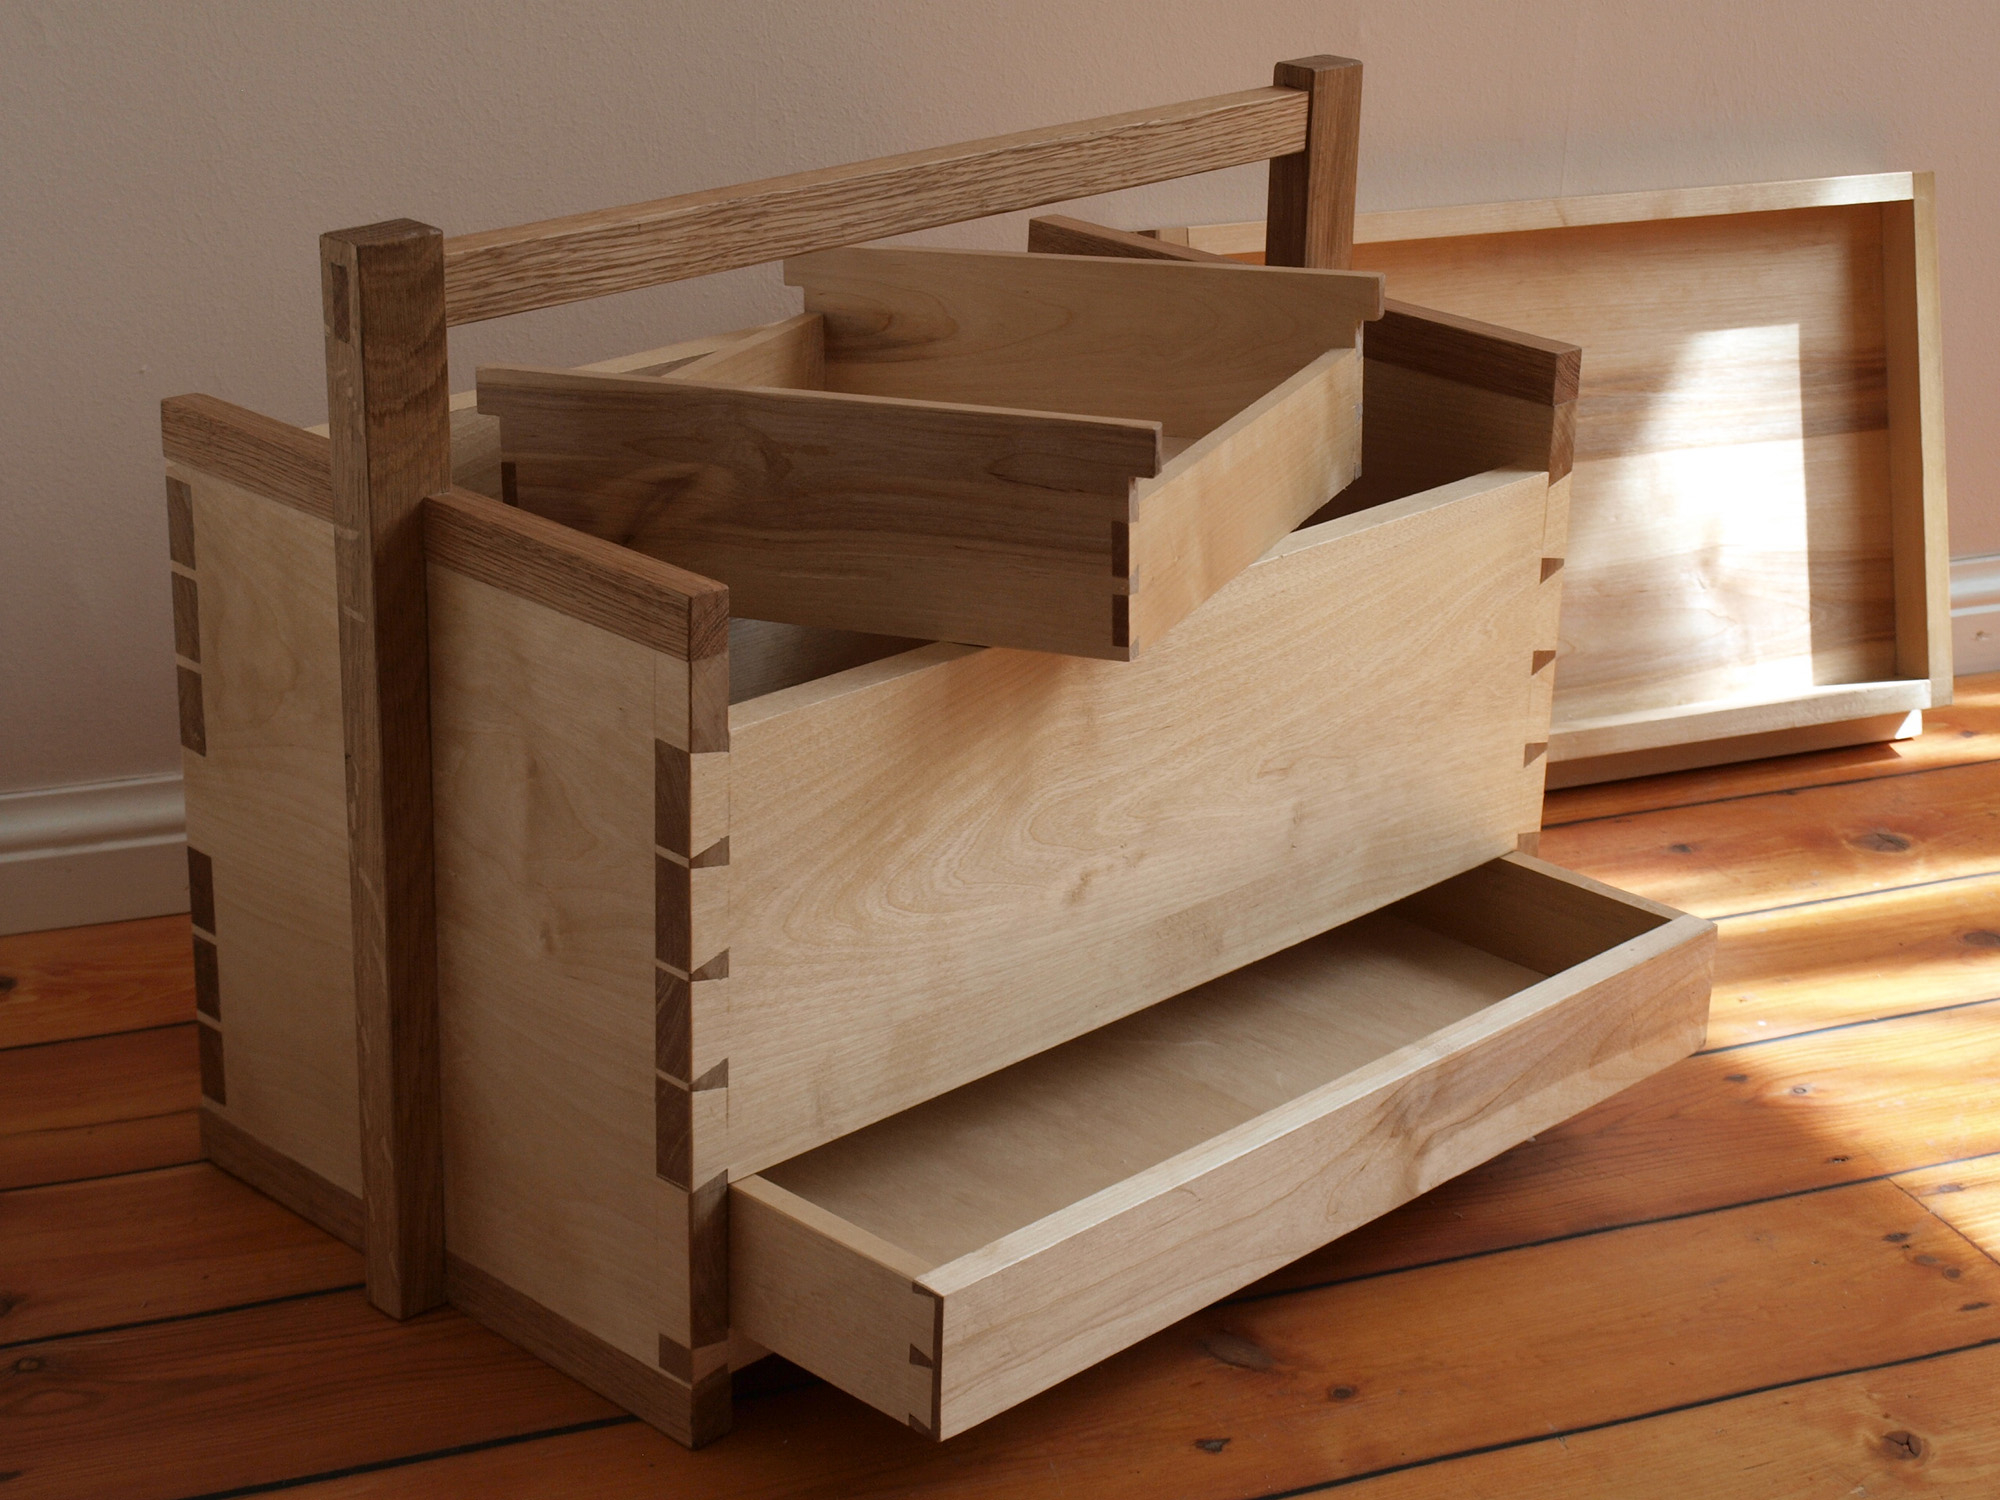 working wood: a toolchest from estonia